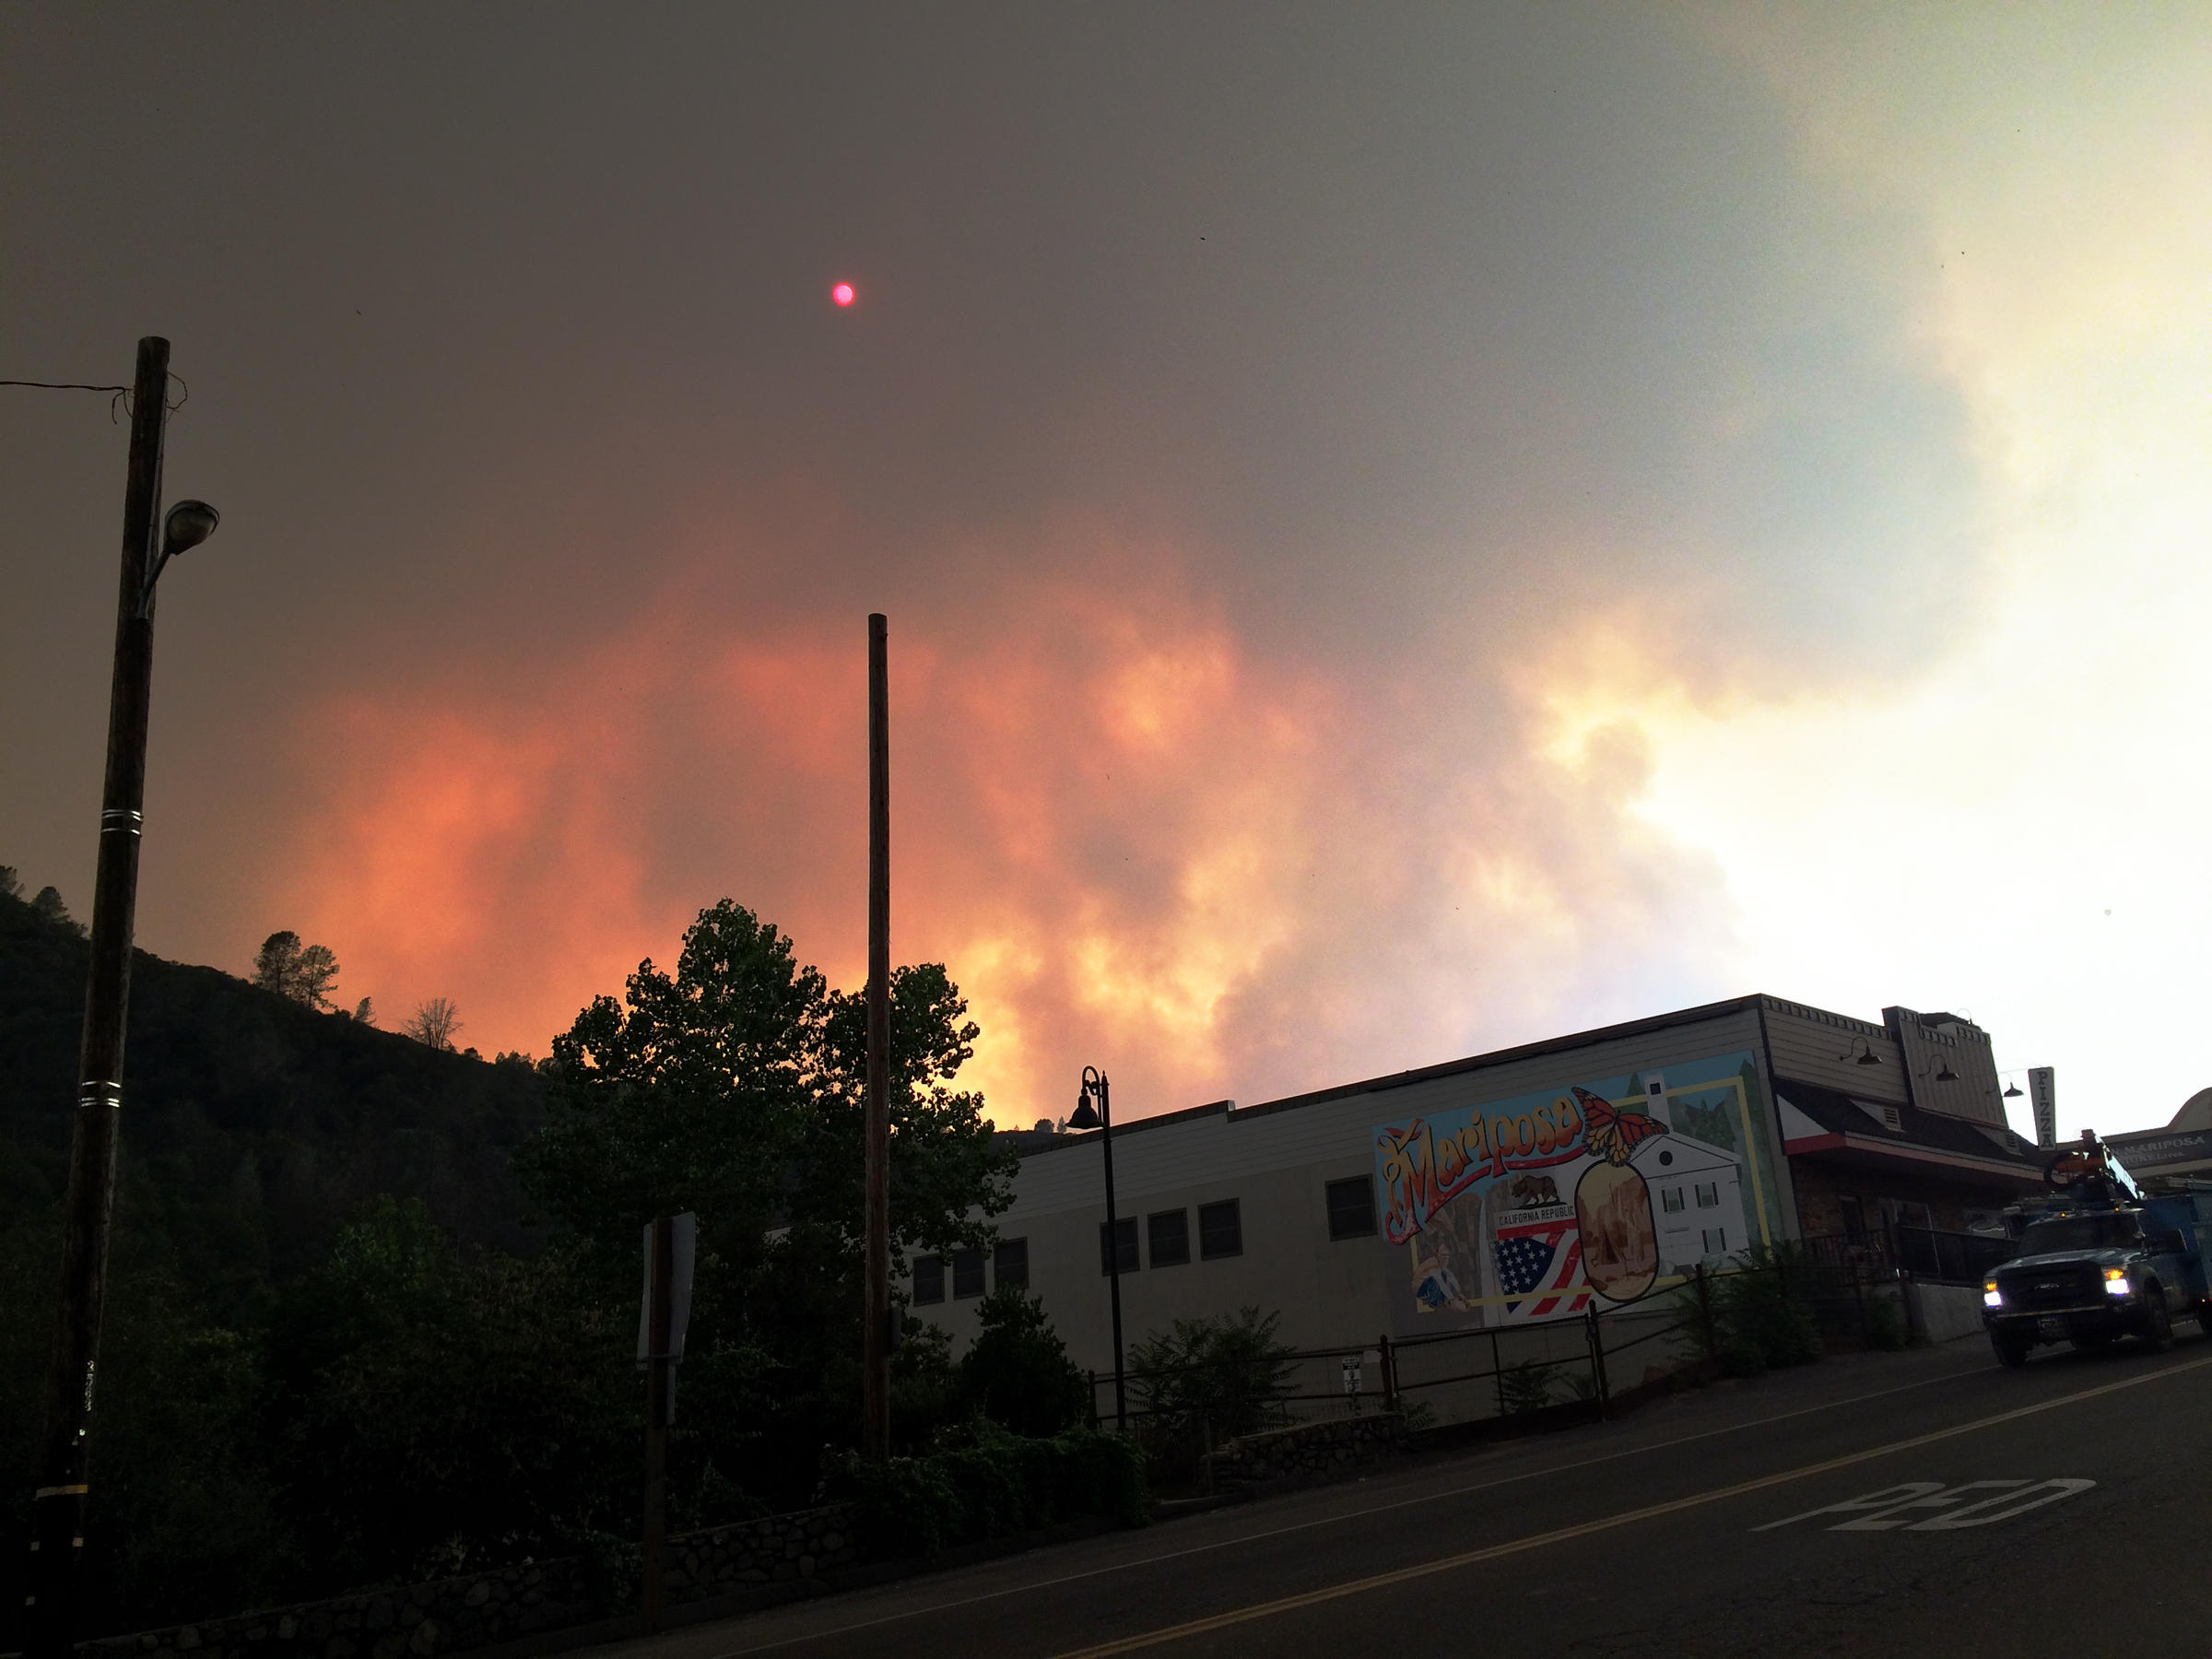 Yosemite under threat as wildfire engulfs northern California (VIDEOS & PHOTOS)